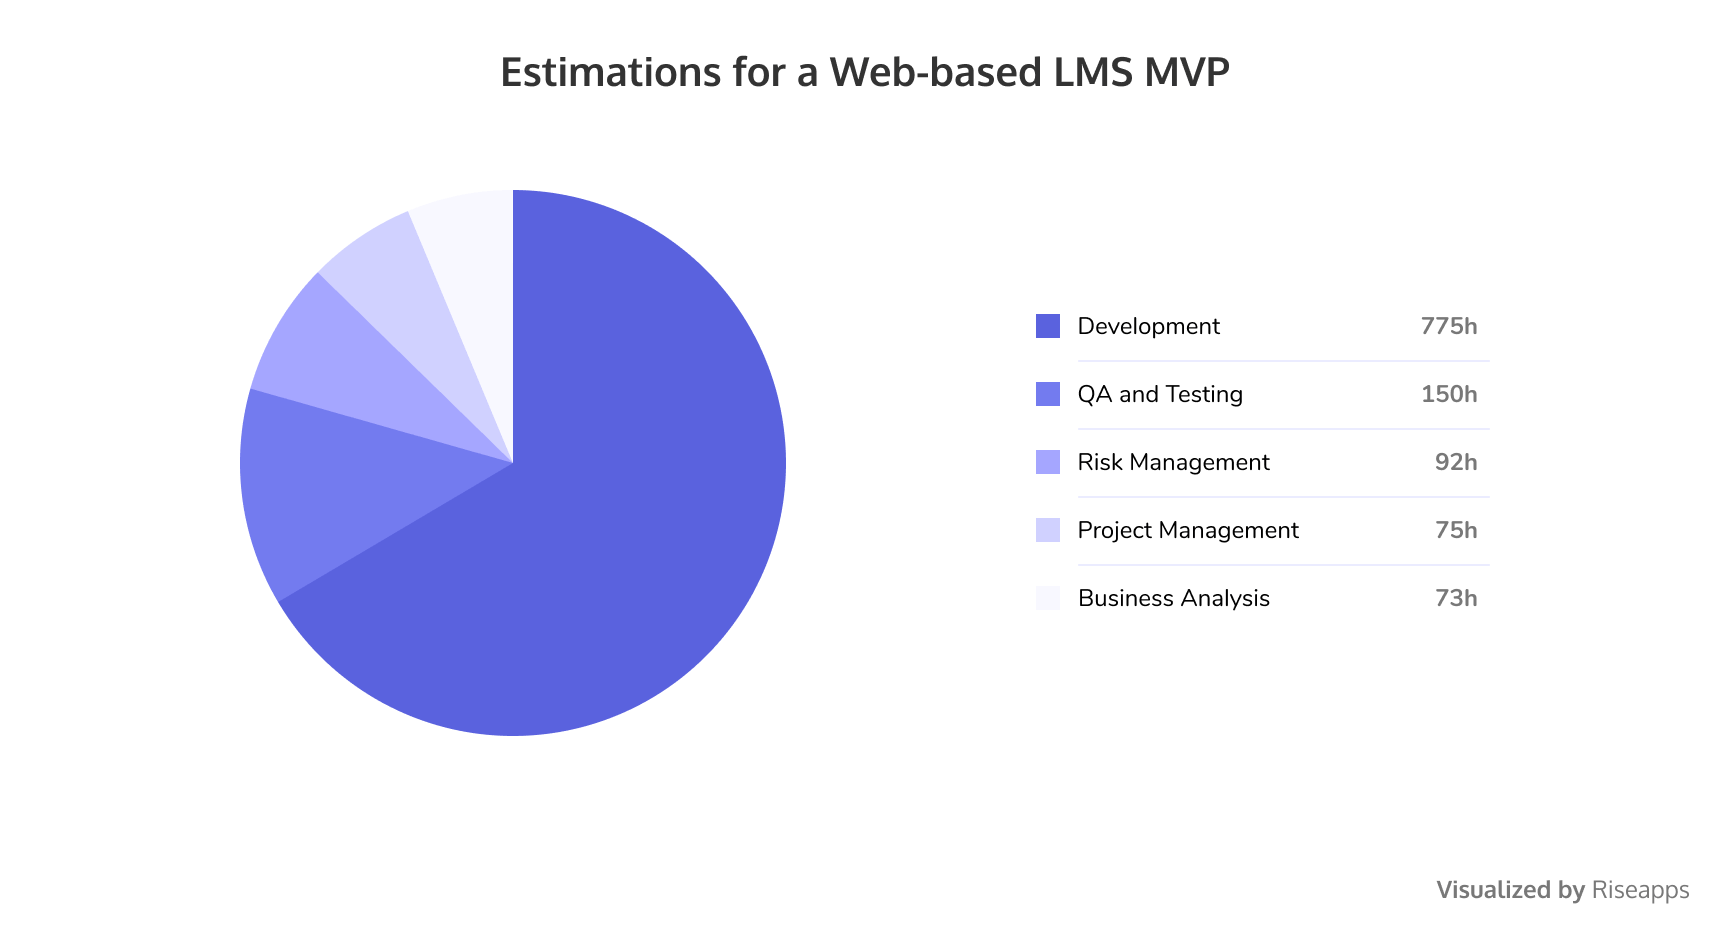 Estimations for a web-based LMS MVP